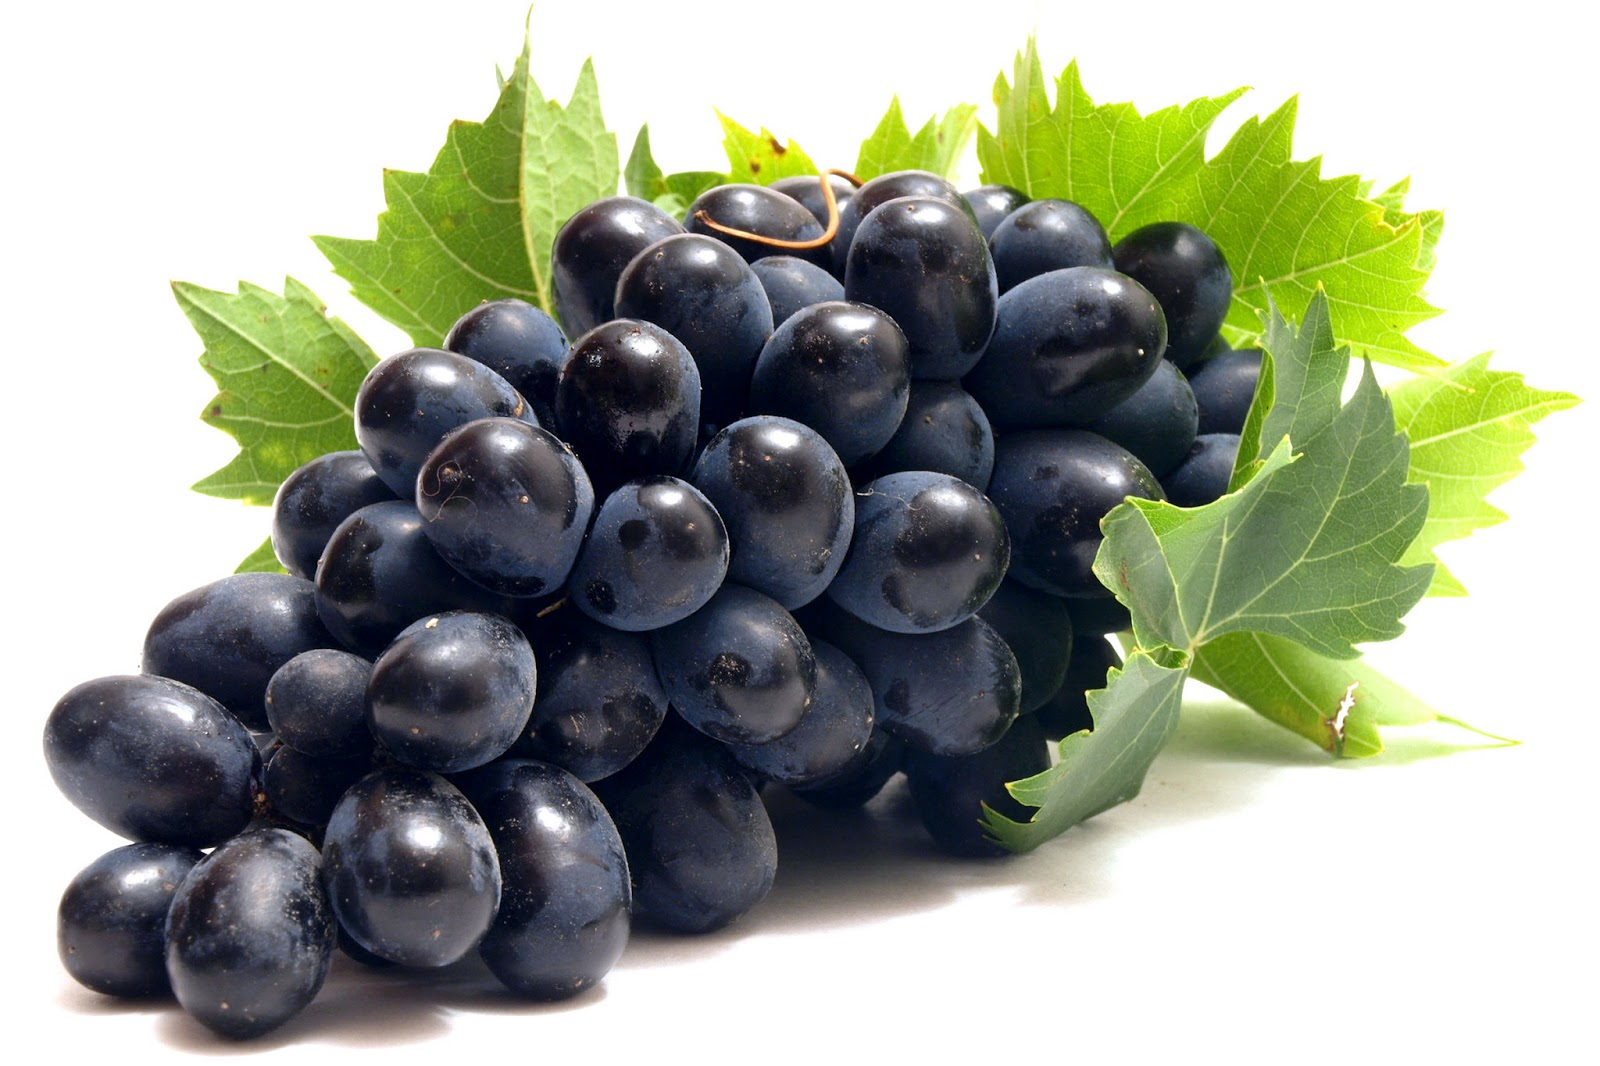 Artikel Terkait Grapes Fruit Wallpaper Pictures 1600x1066